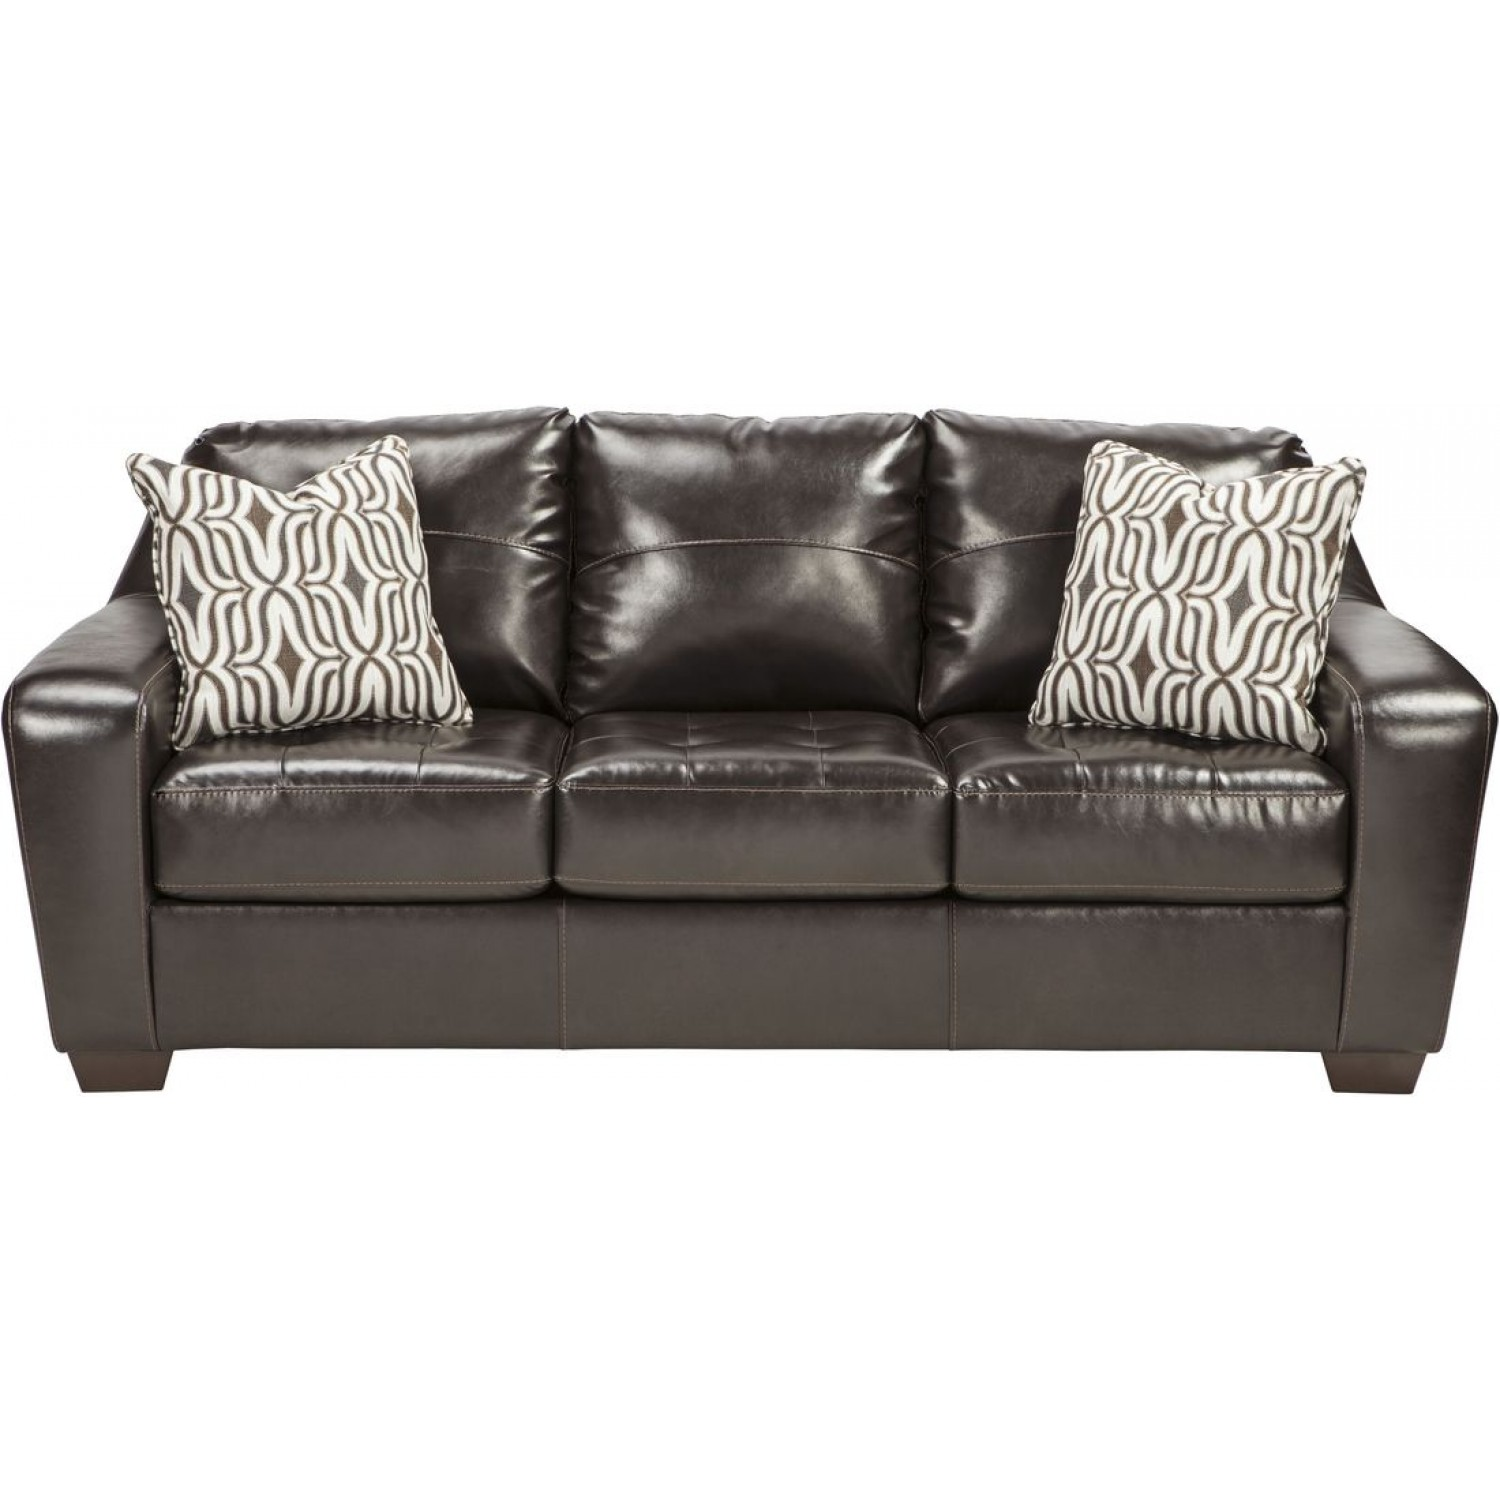 durablend sofa best leather sleepers ashley coppell chocolate dallas tx living